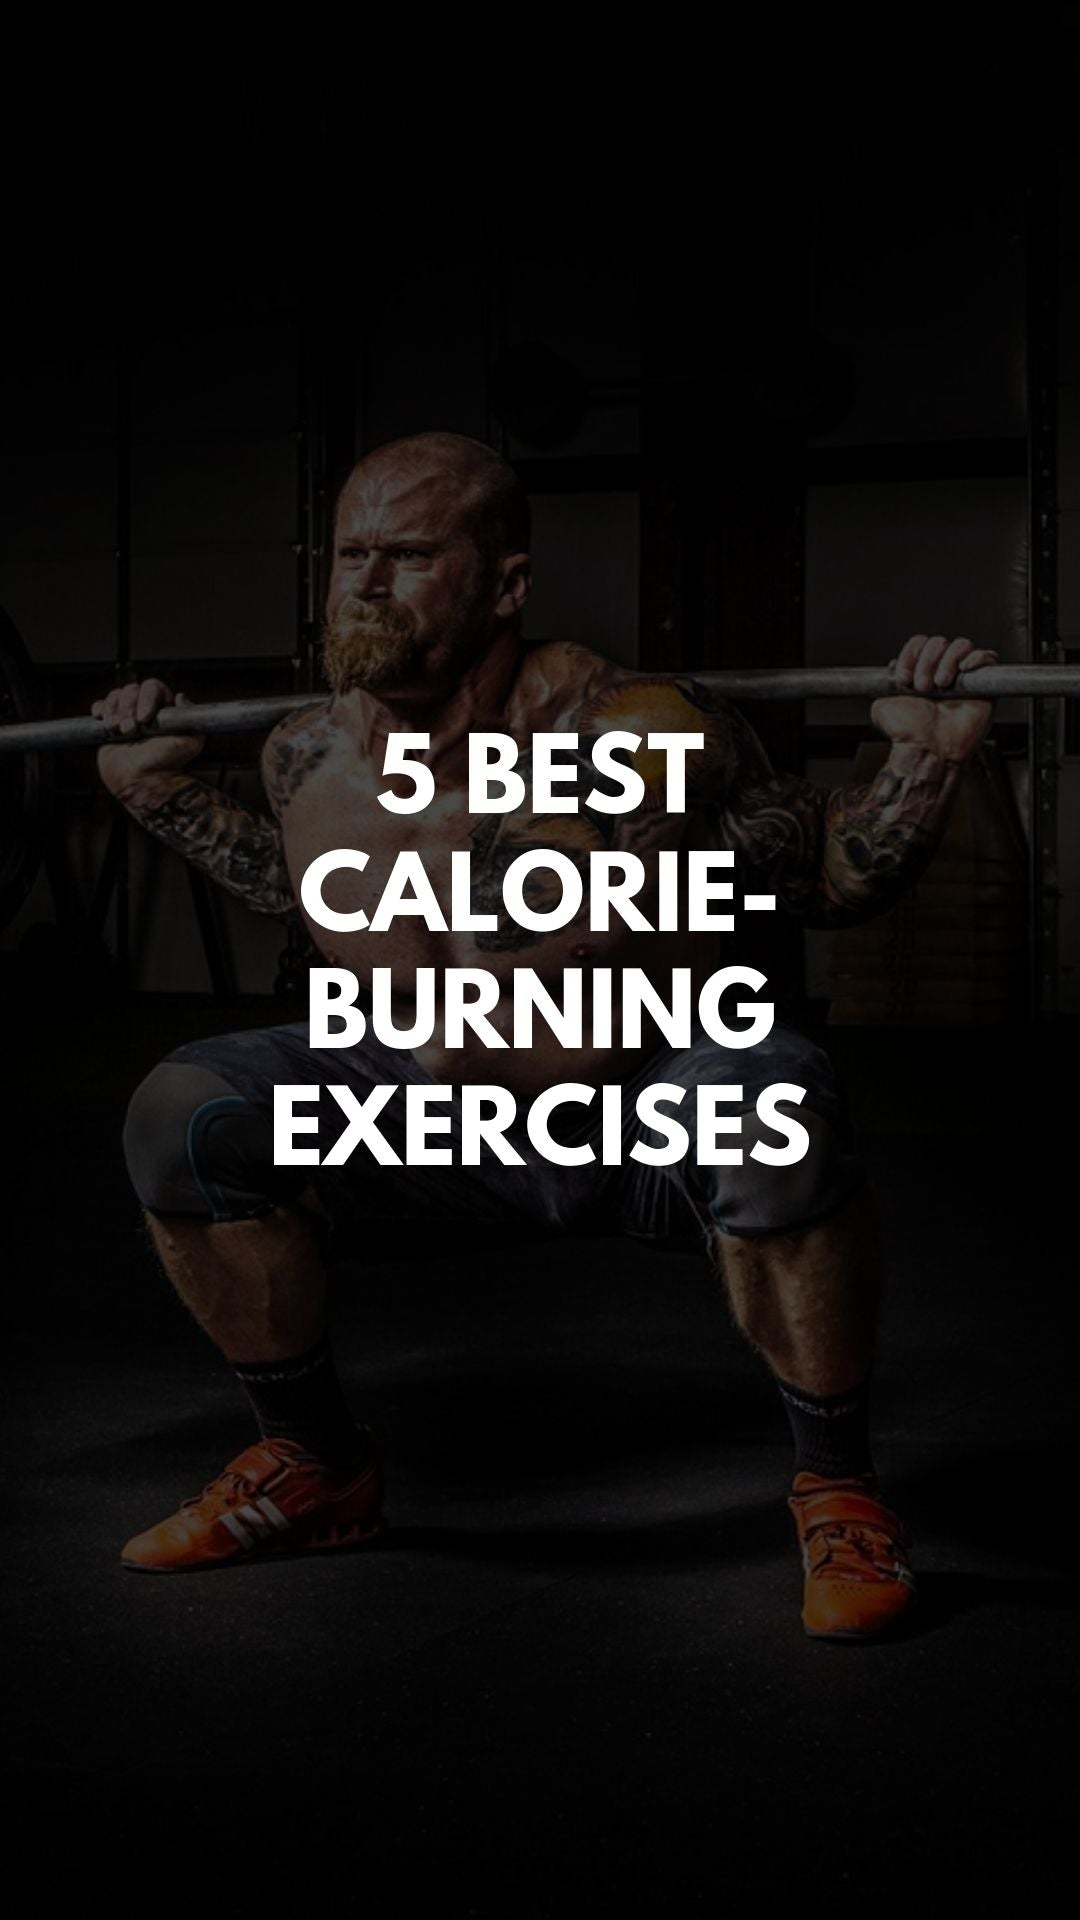 5 Best Calorie-Burning Exercises